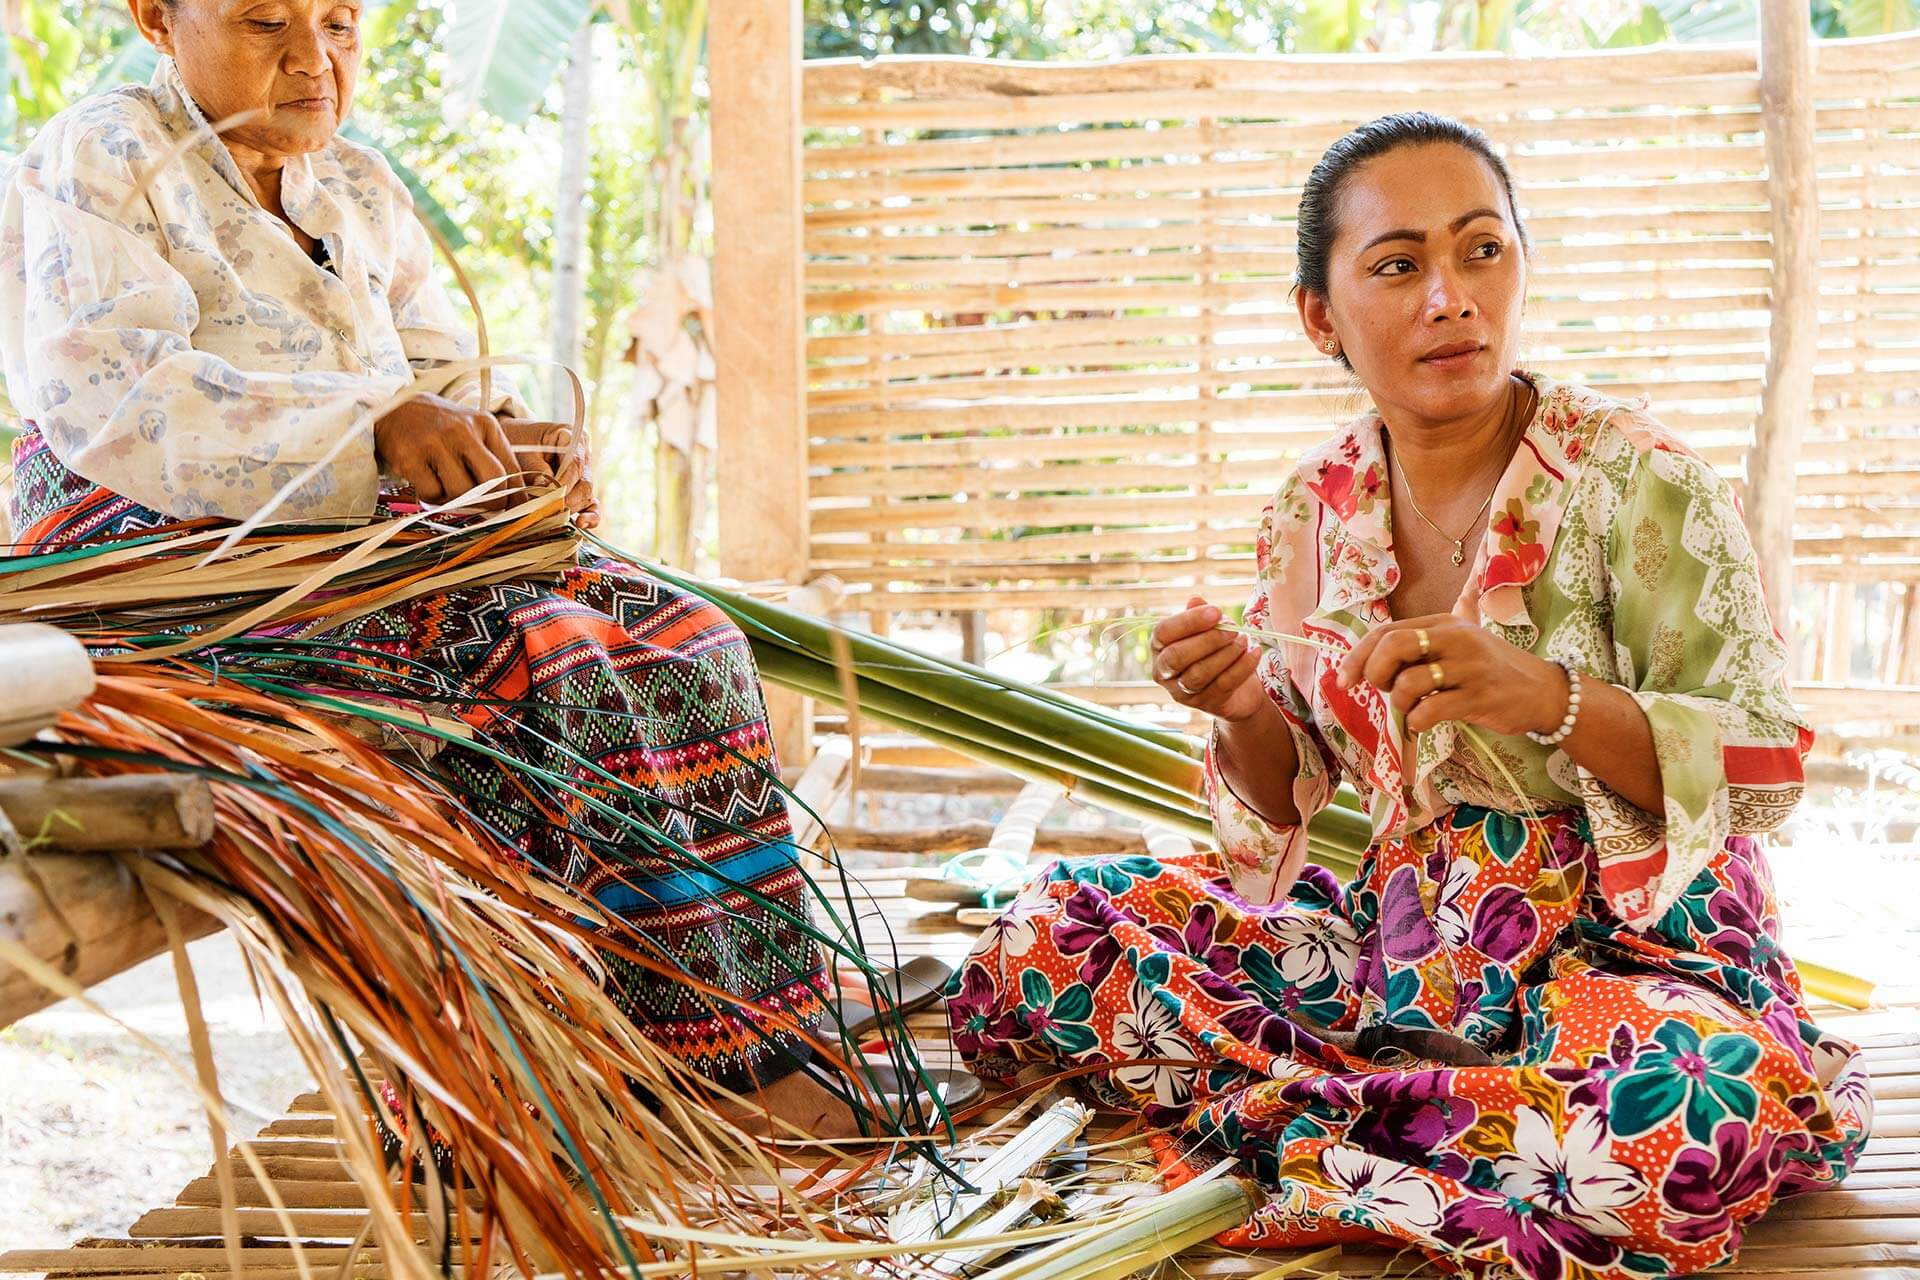 Palawan is known for its pristine waters and incomparable shores. But within the island lies a history of its people's crafts that runs as deep as the waters surrounding it.